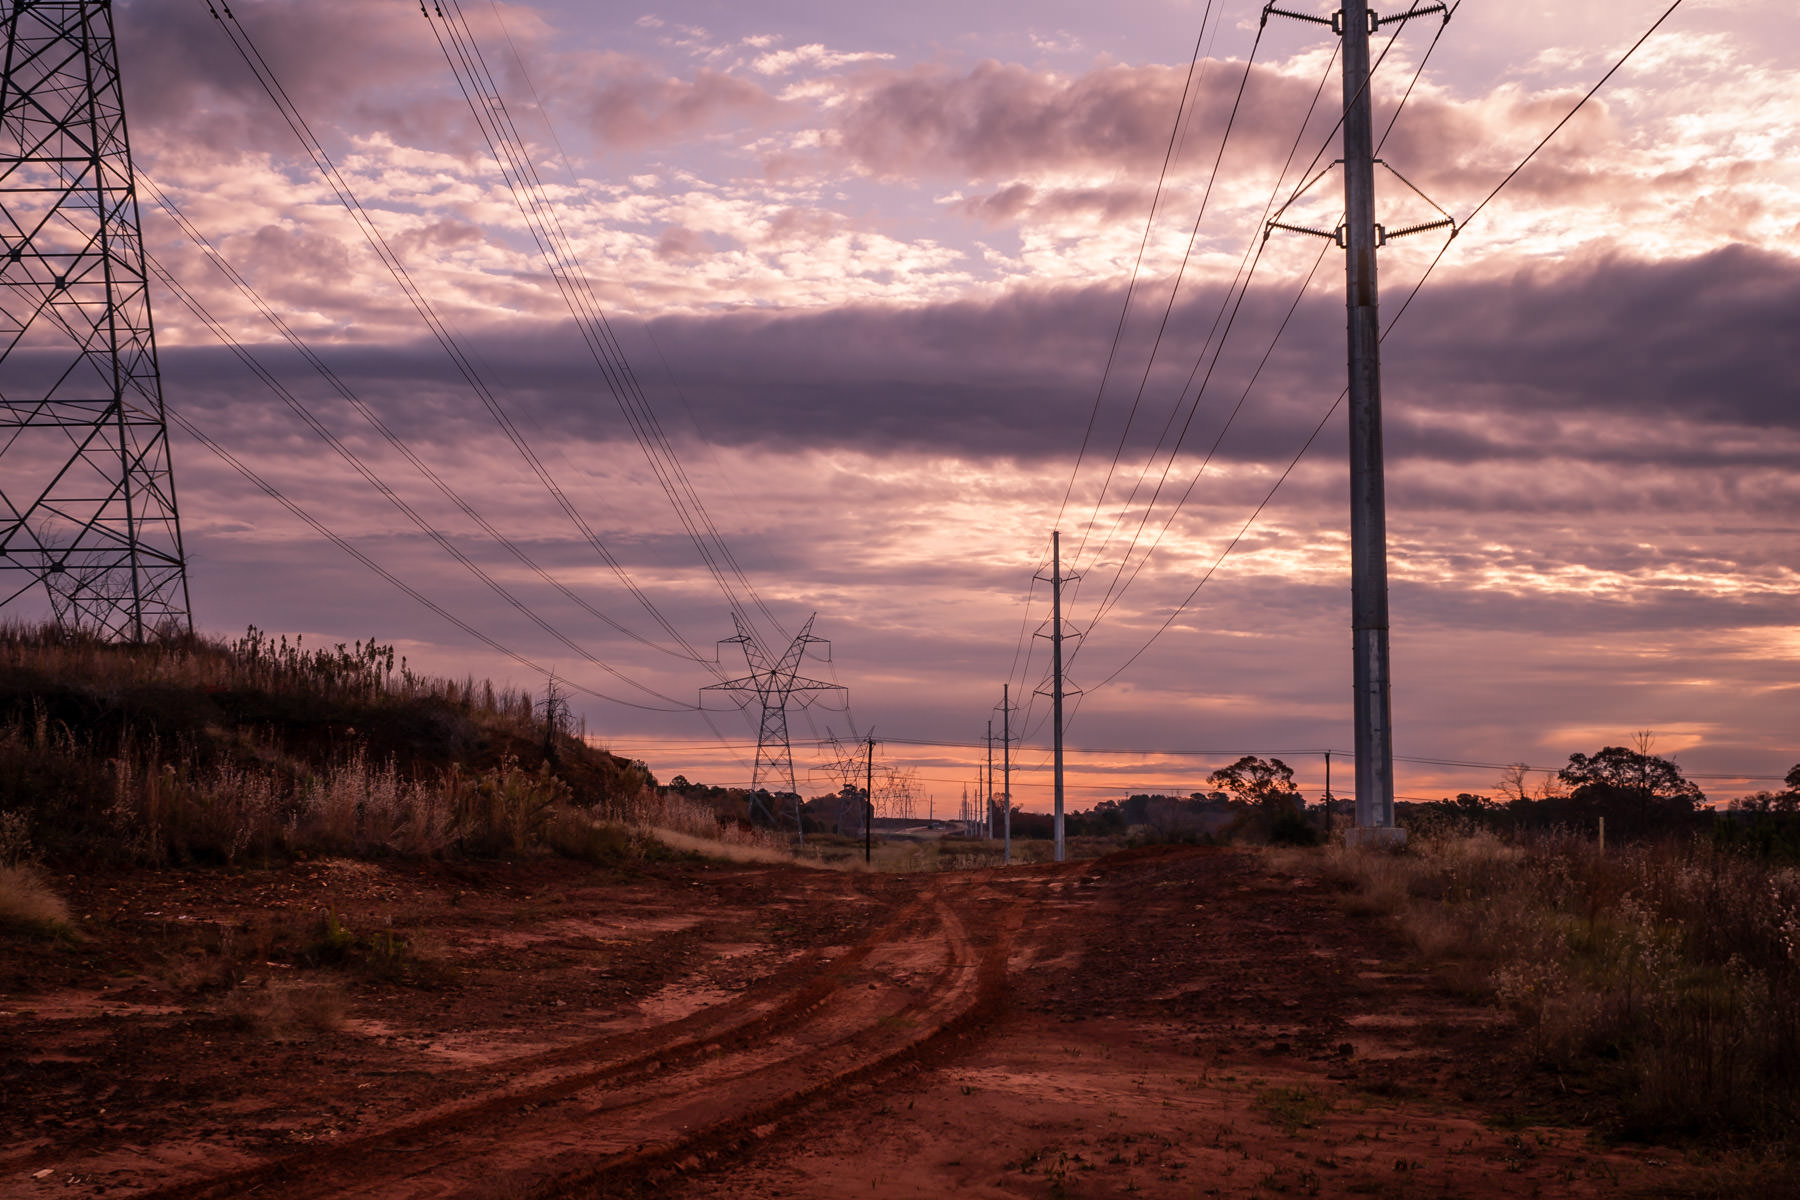 The dawn sky as seen from a power line right-of-way in Tyler, Texas.